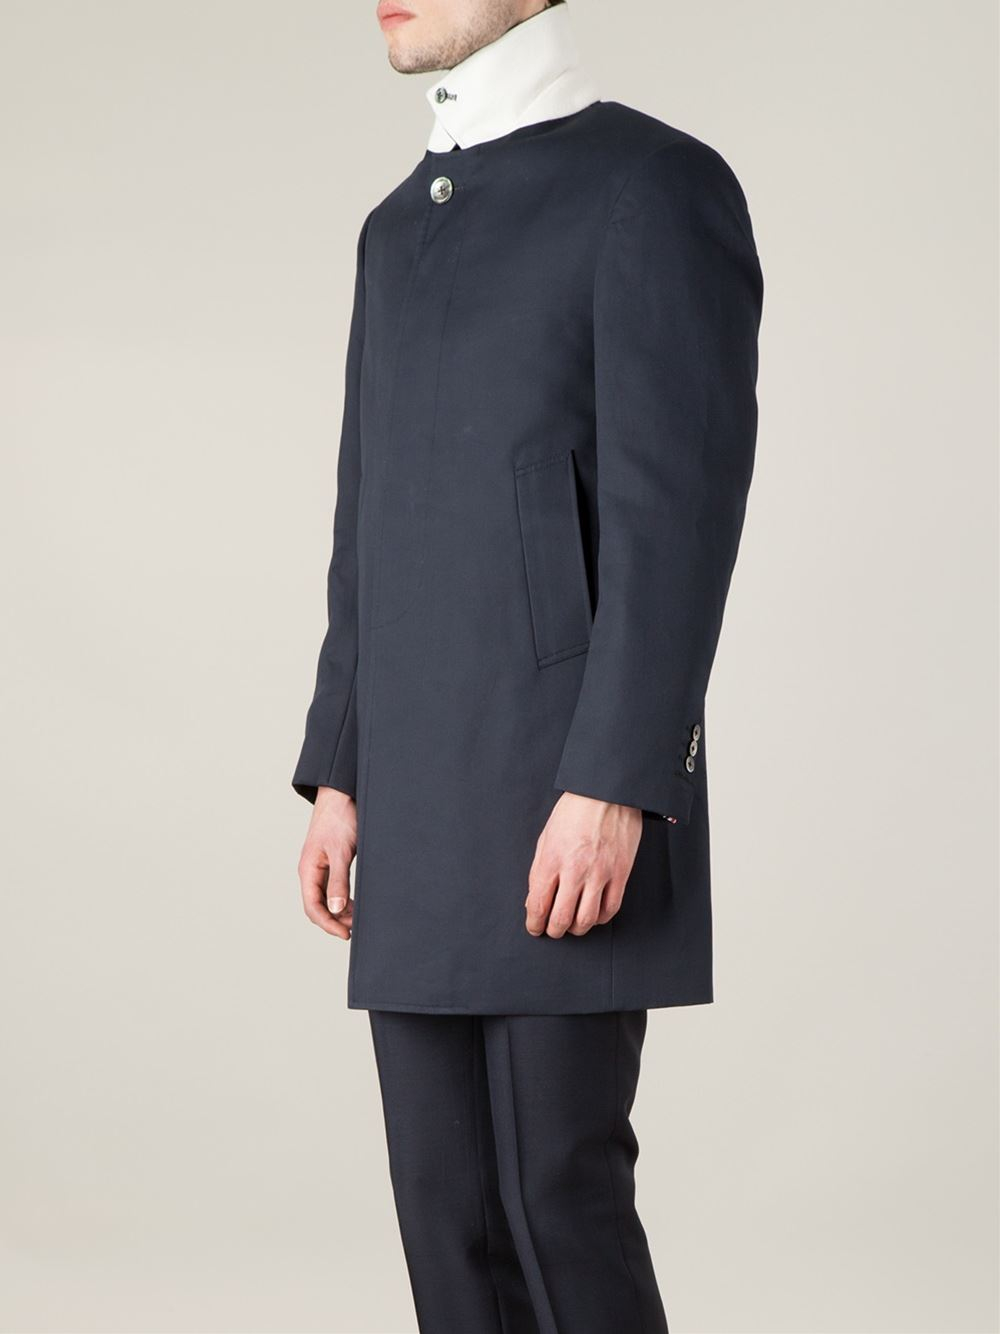 Thom browne Classic Cotton Trench Coat in Blue for Men